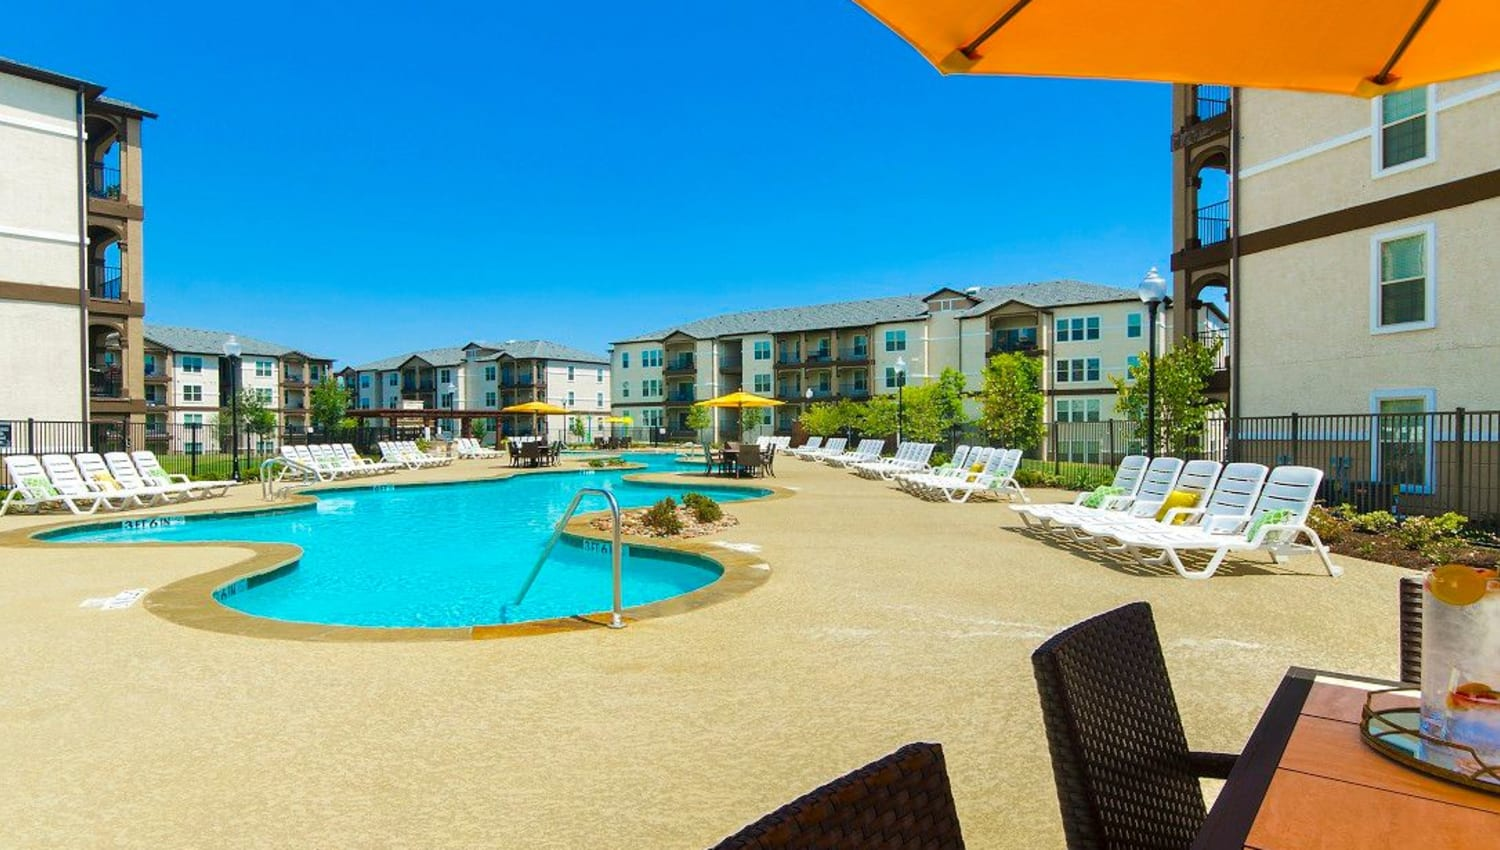 Beautiful day at the swimming pool area at Olympus Woodbridge in Sachse, Texas